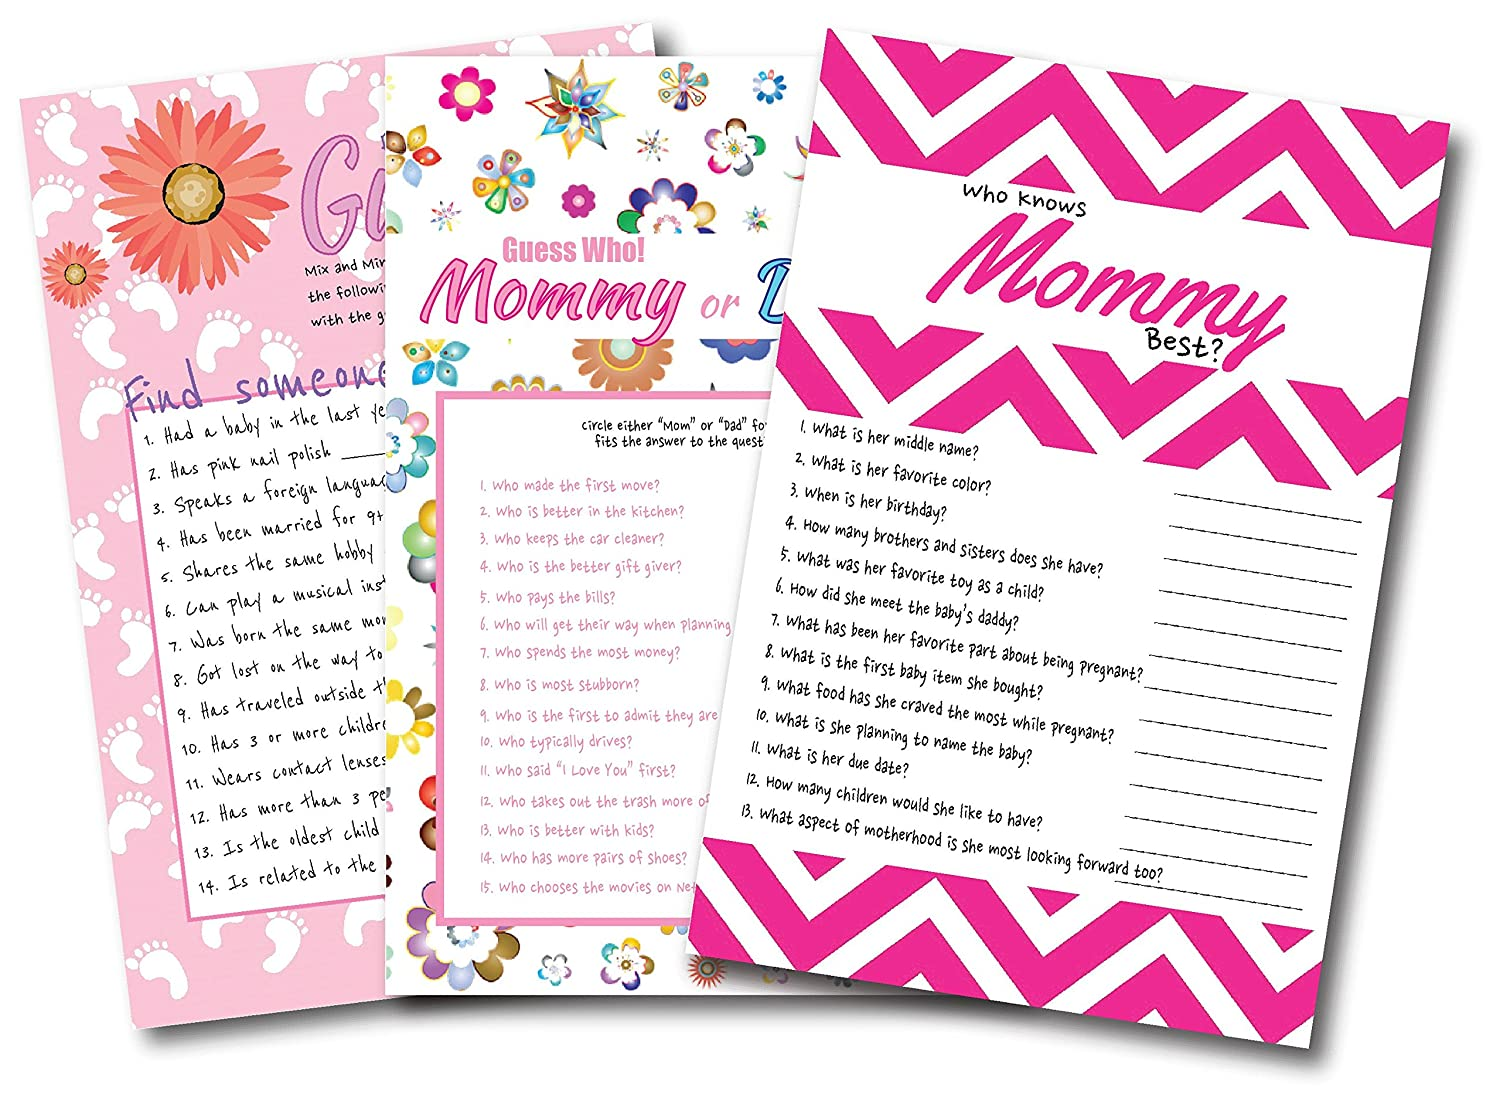 Baby Girl Shower Games Find The Guest, Who Knows Mommy Best, Mommy or Daddy By L and P Designs Baby Party Ideas